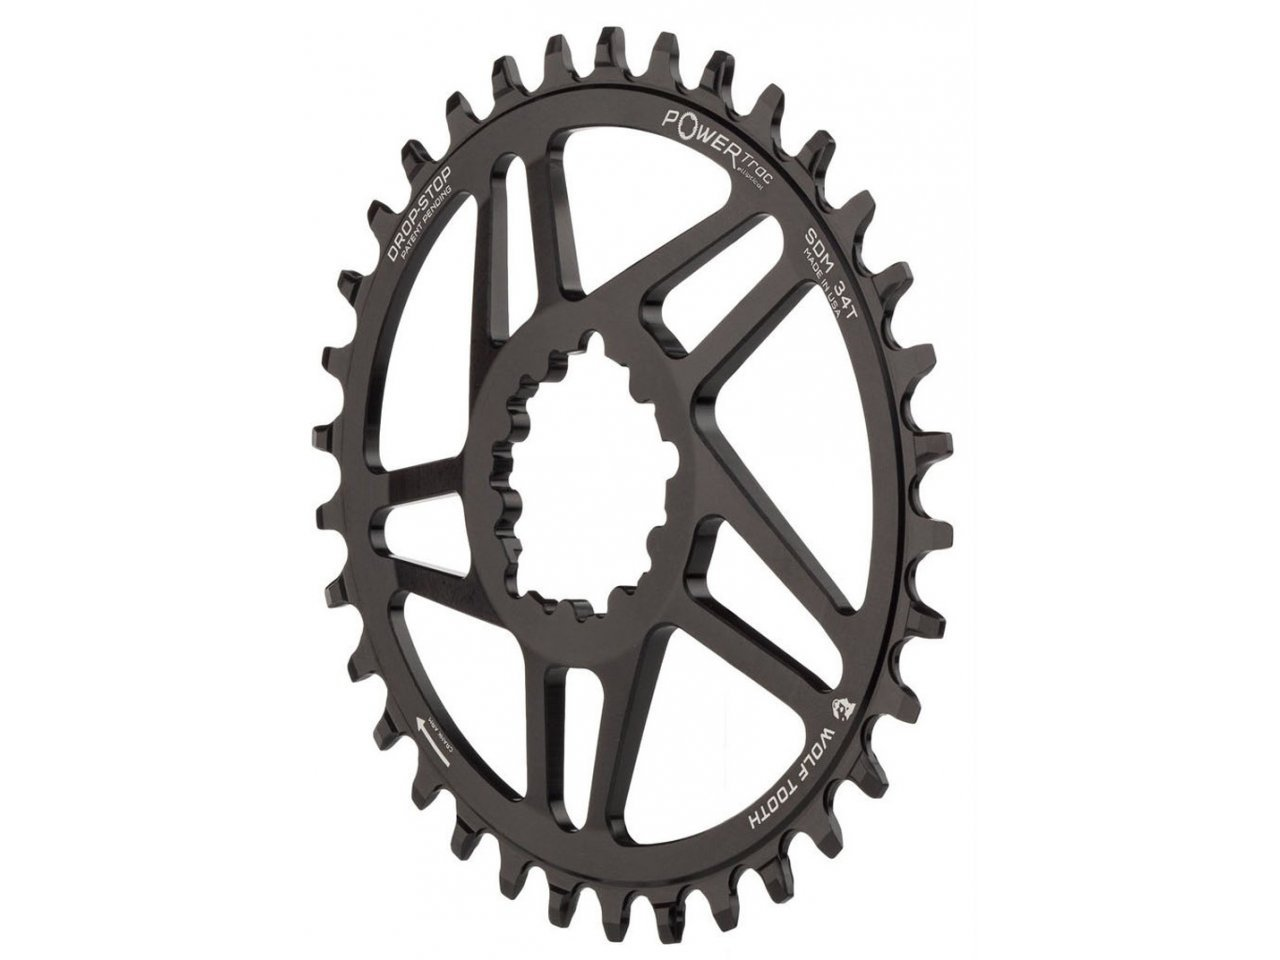 For Shimano XT M8000 Wolf Tooth Elliptical Chainring 30T x 96 Asymmetrical BCD